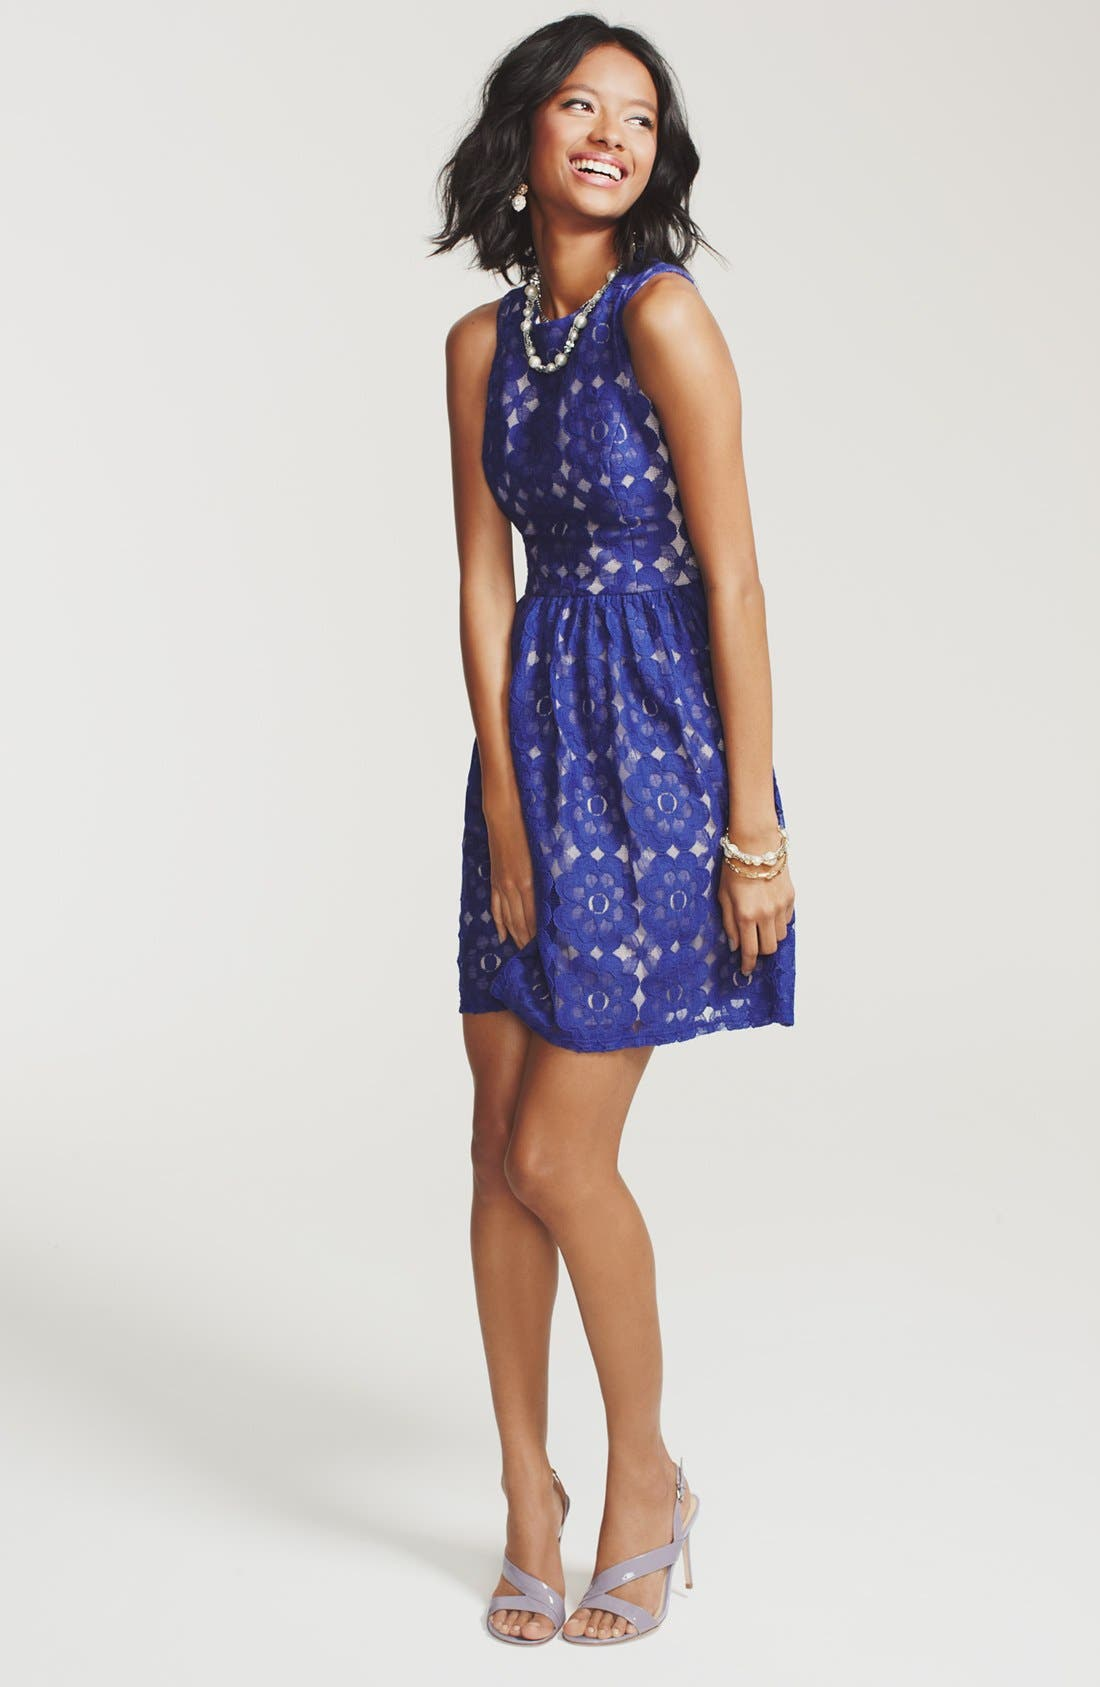 Main Image - Ivy & Blu for Maggy Boutique Dress & Accessories